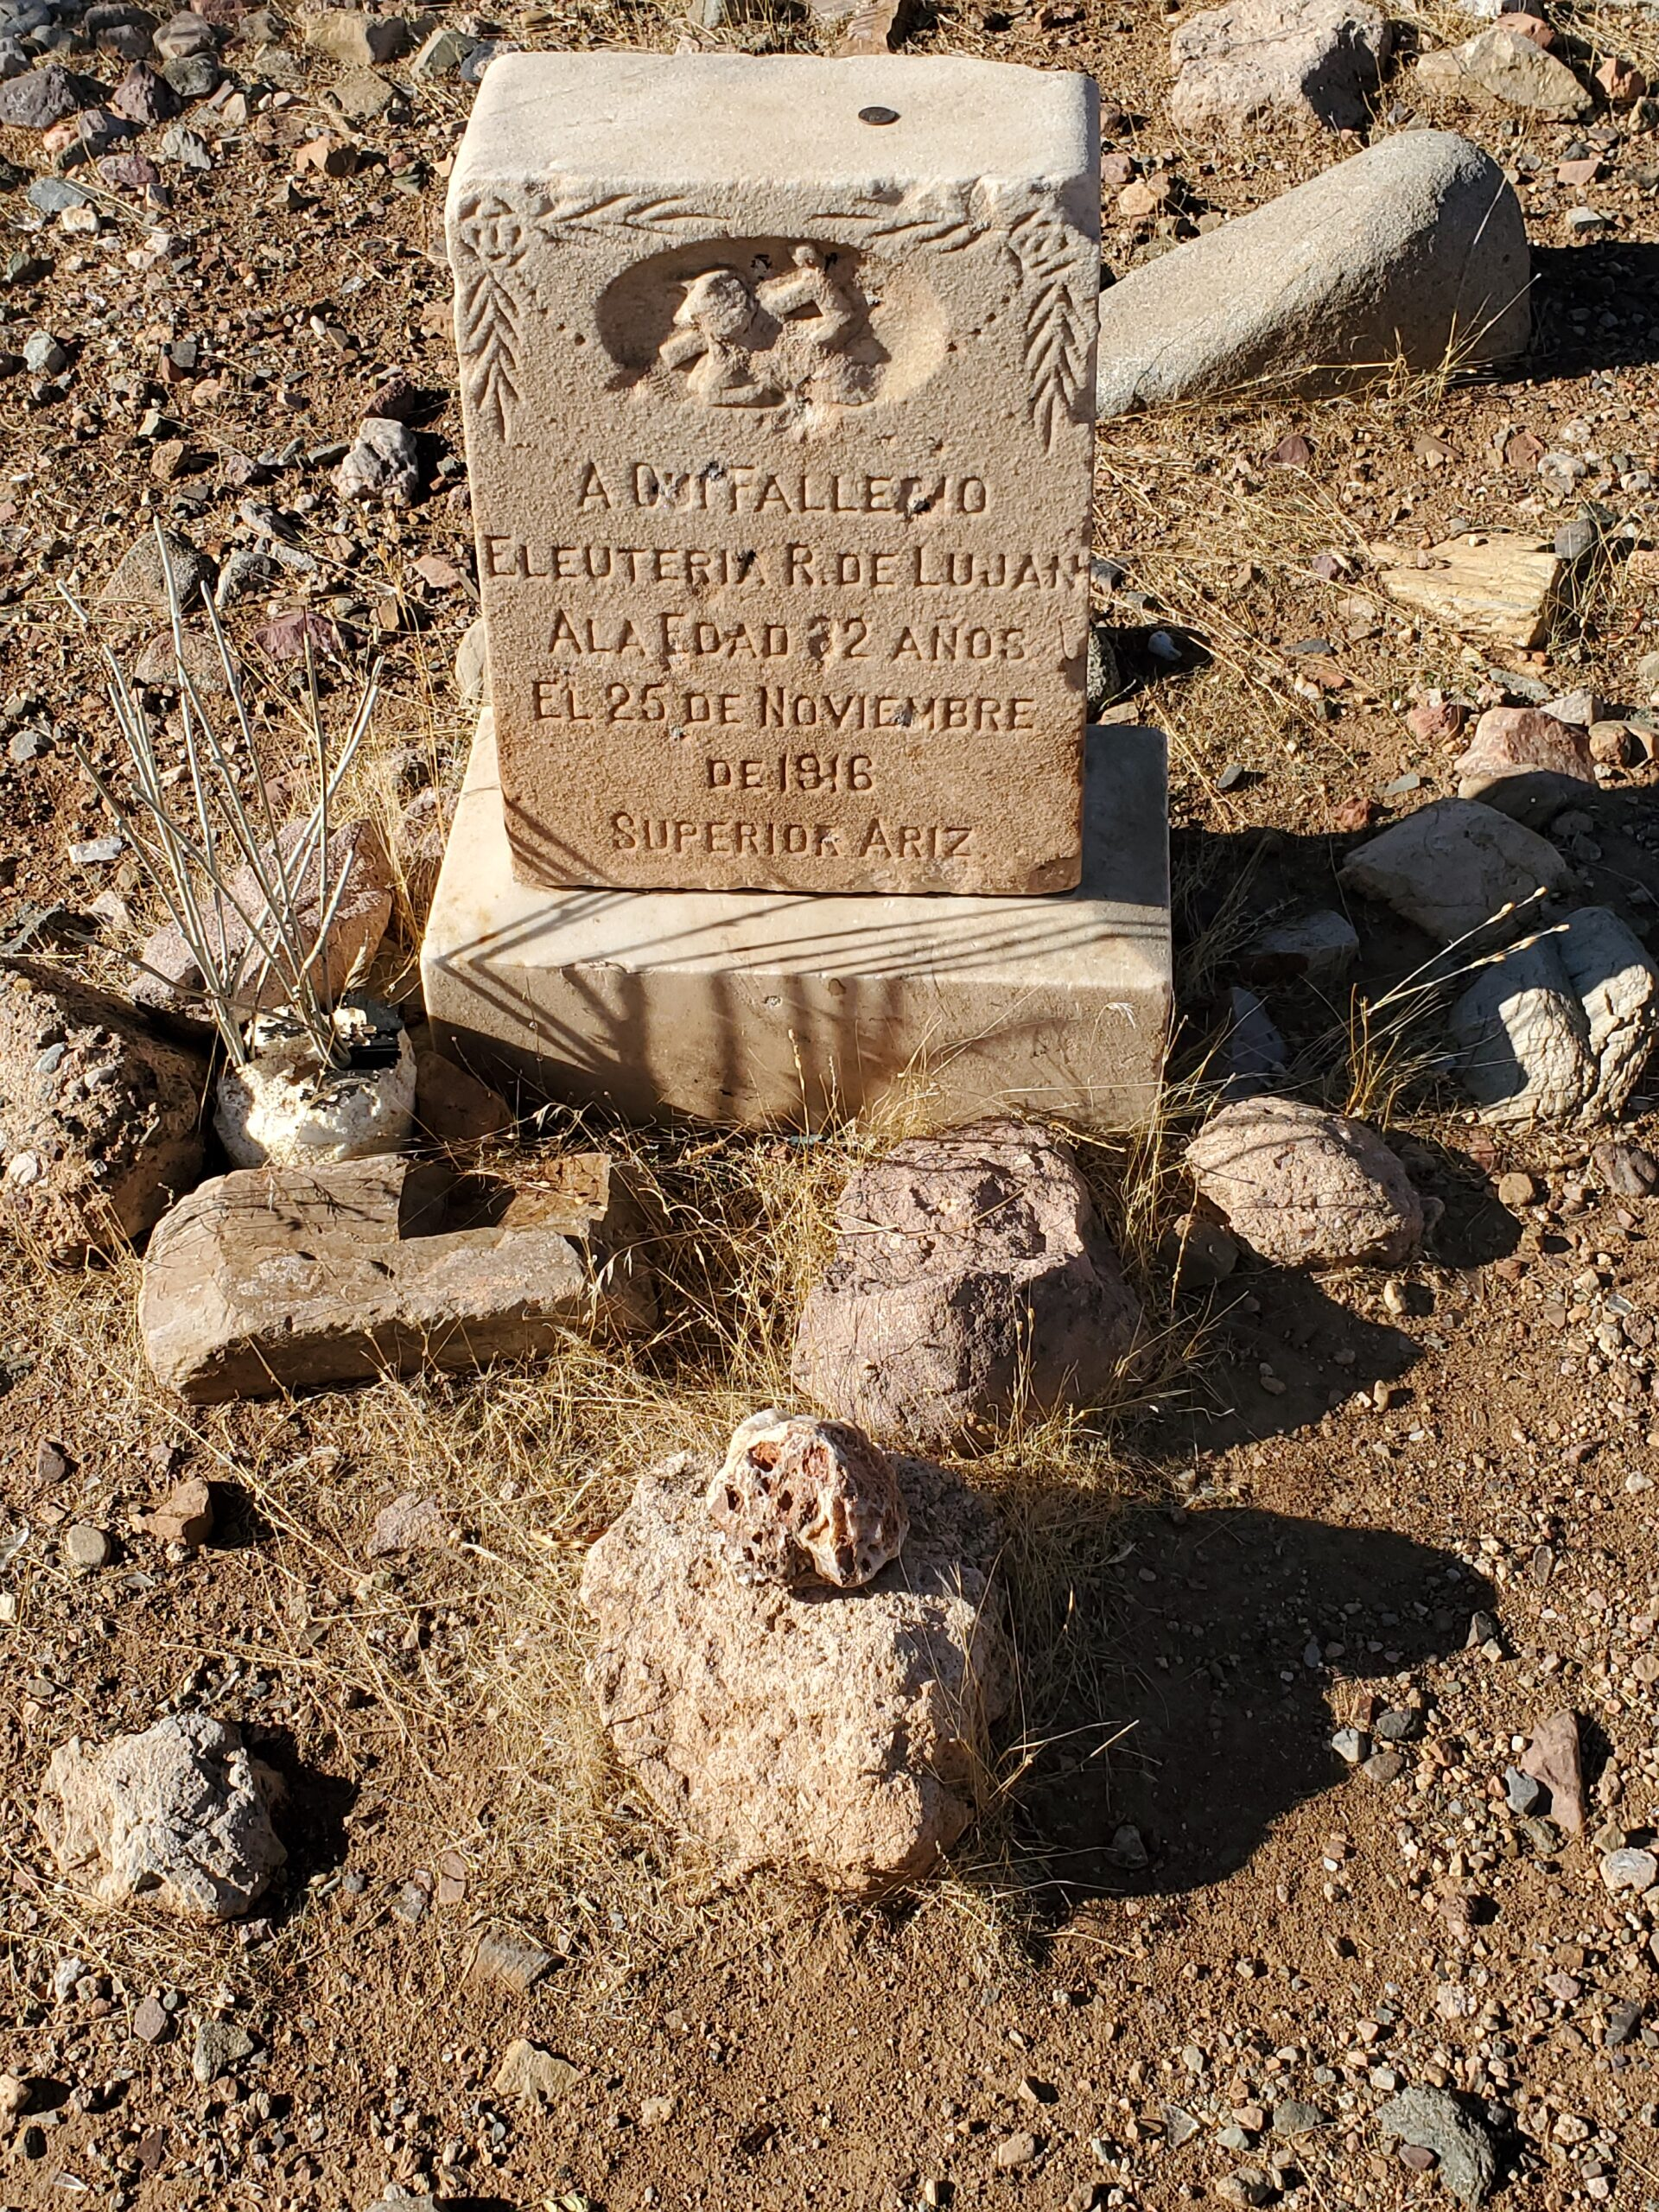 One of the better marked Historic Pinal graves